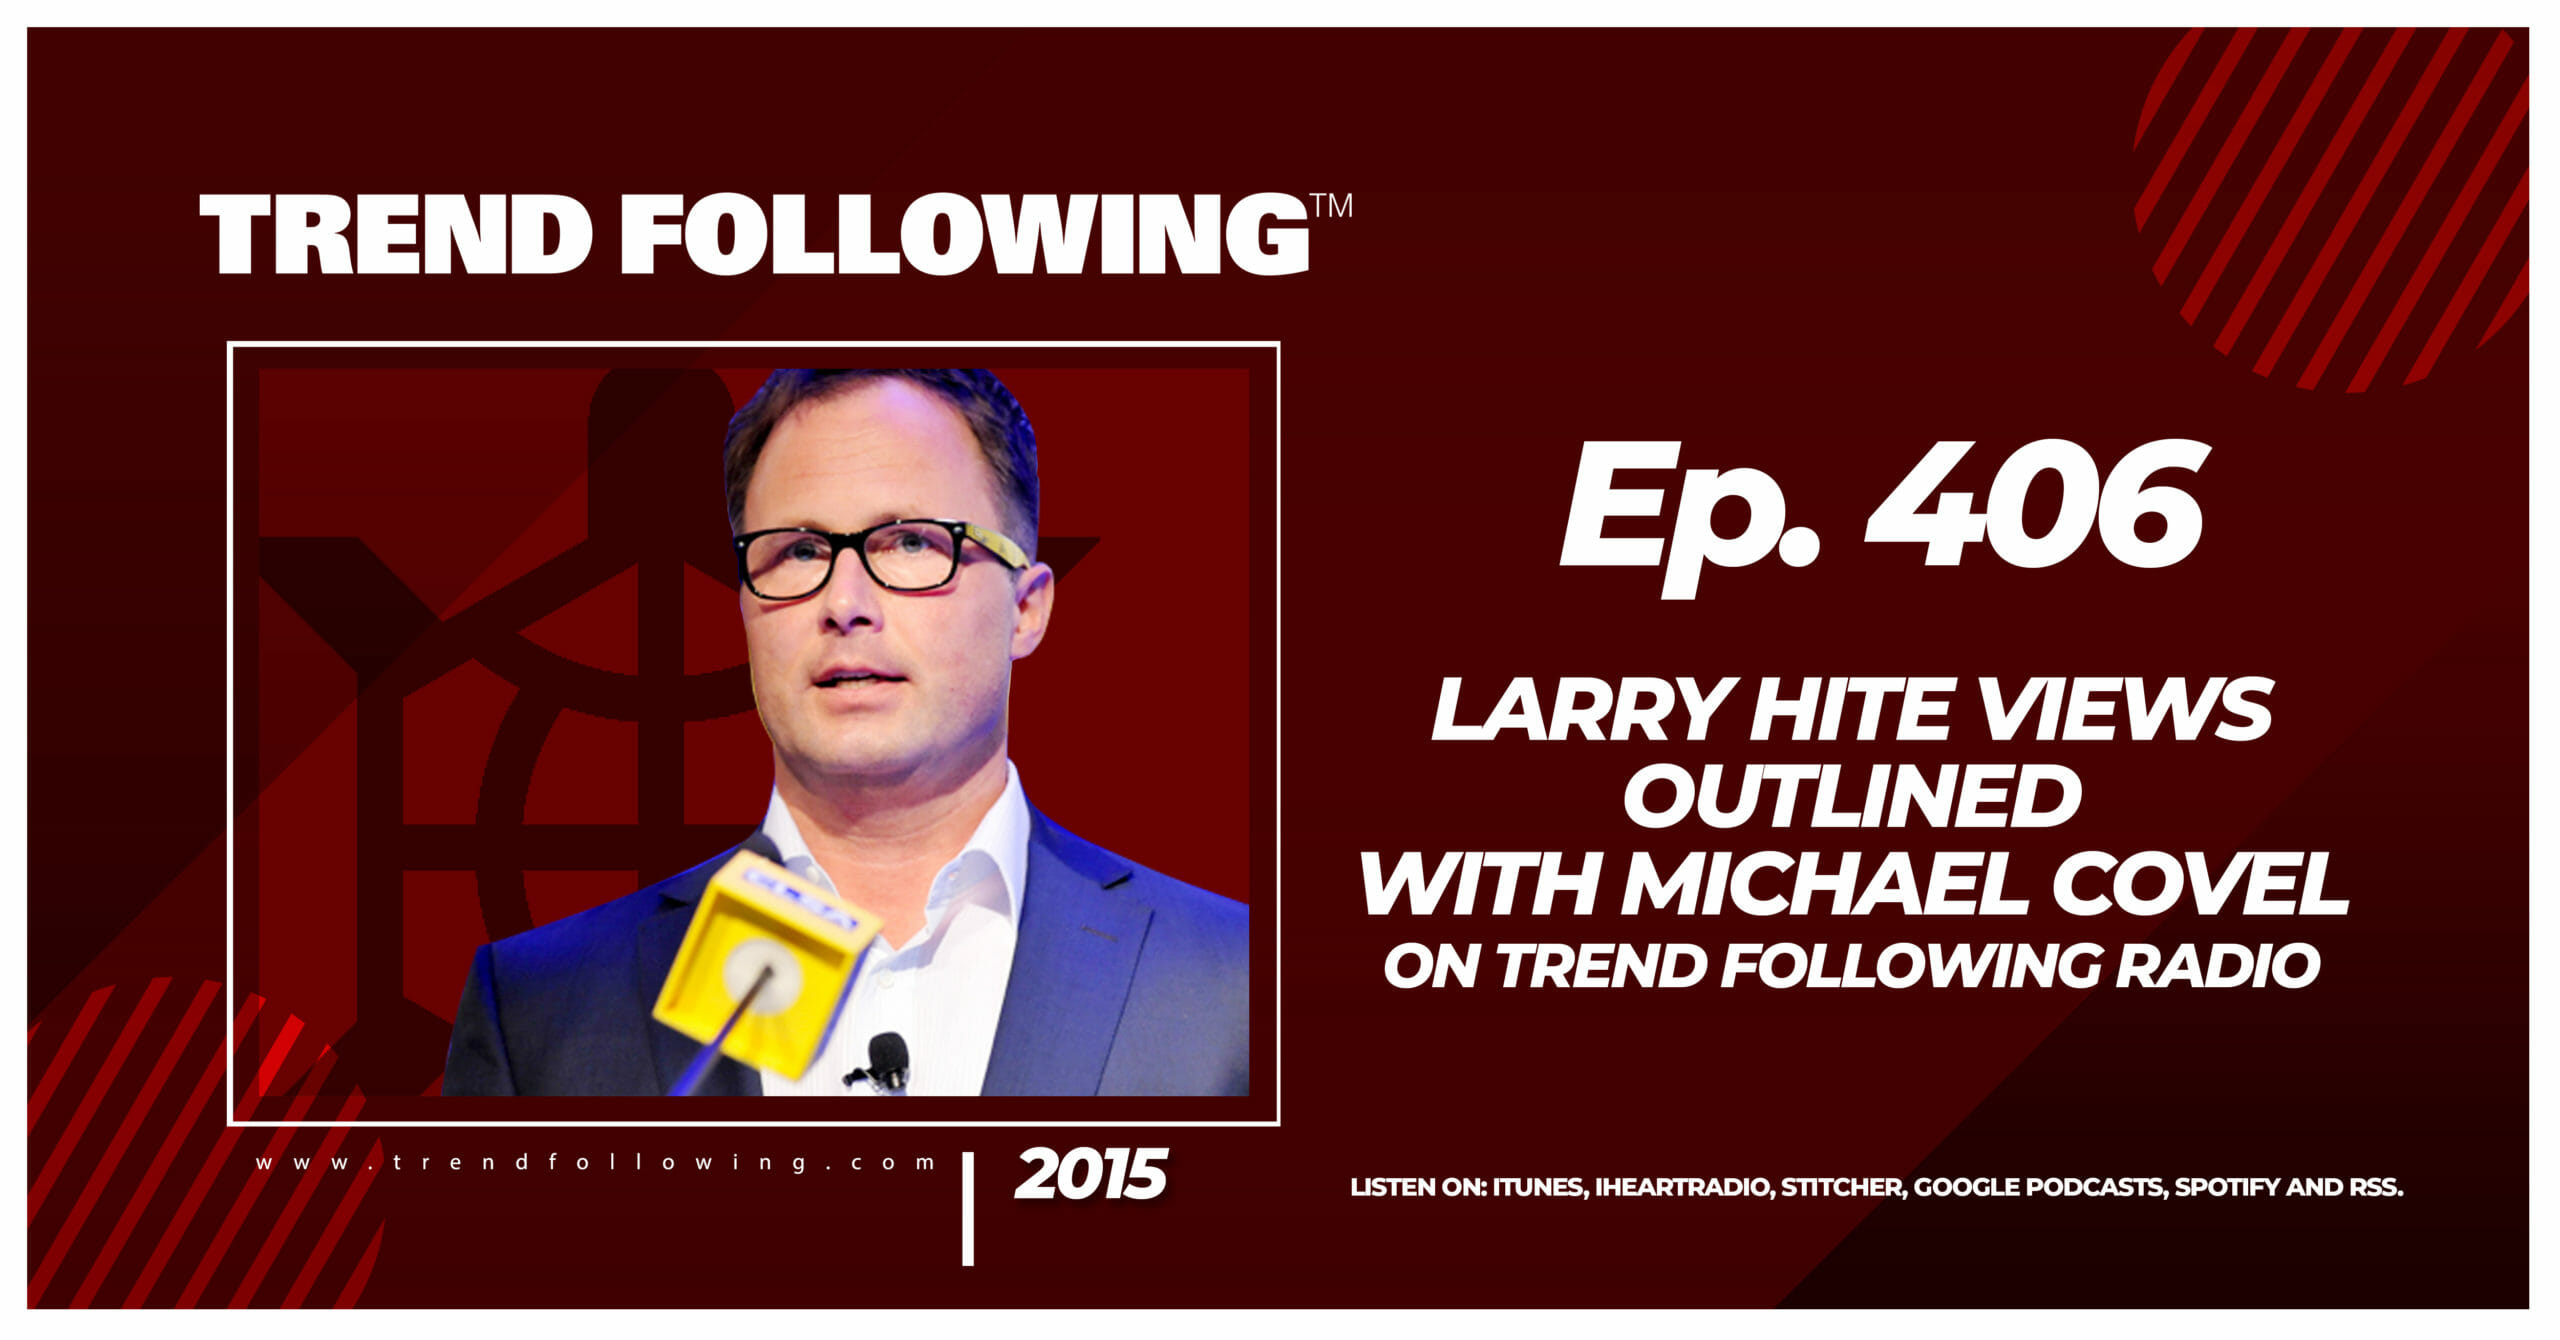 Larry Hite Views Outlined with Michael Covel on Trend Following Radio